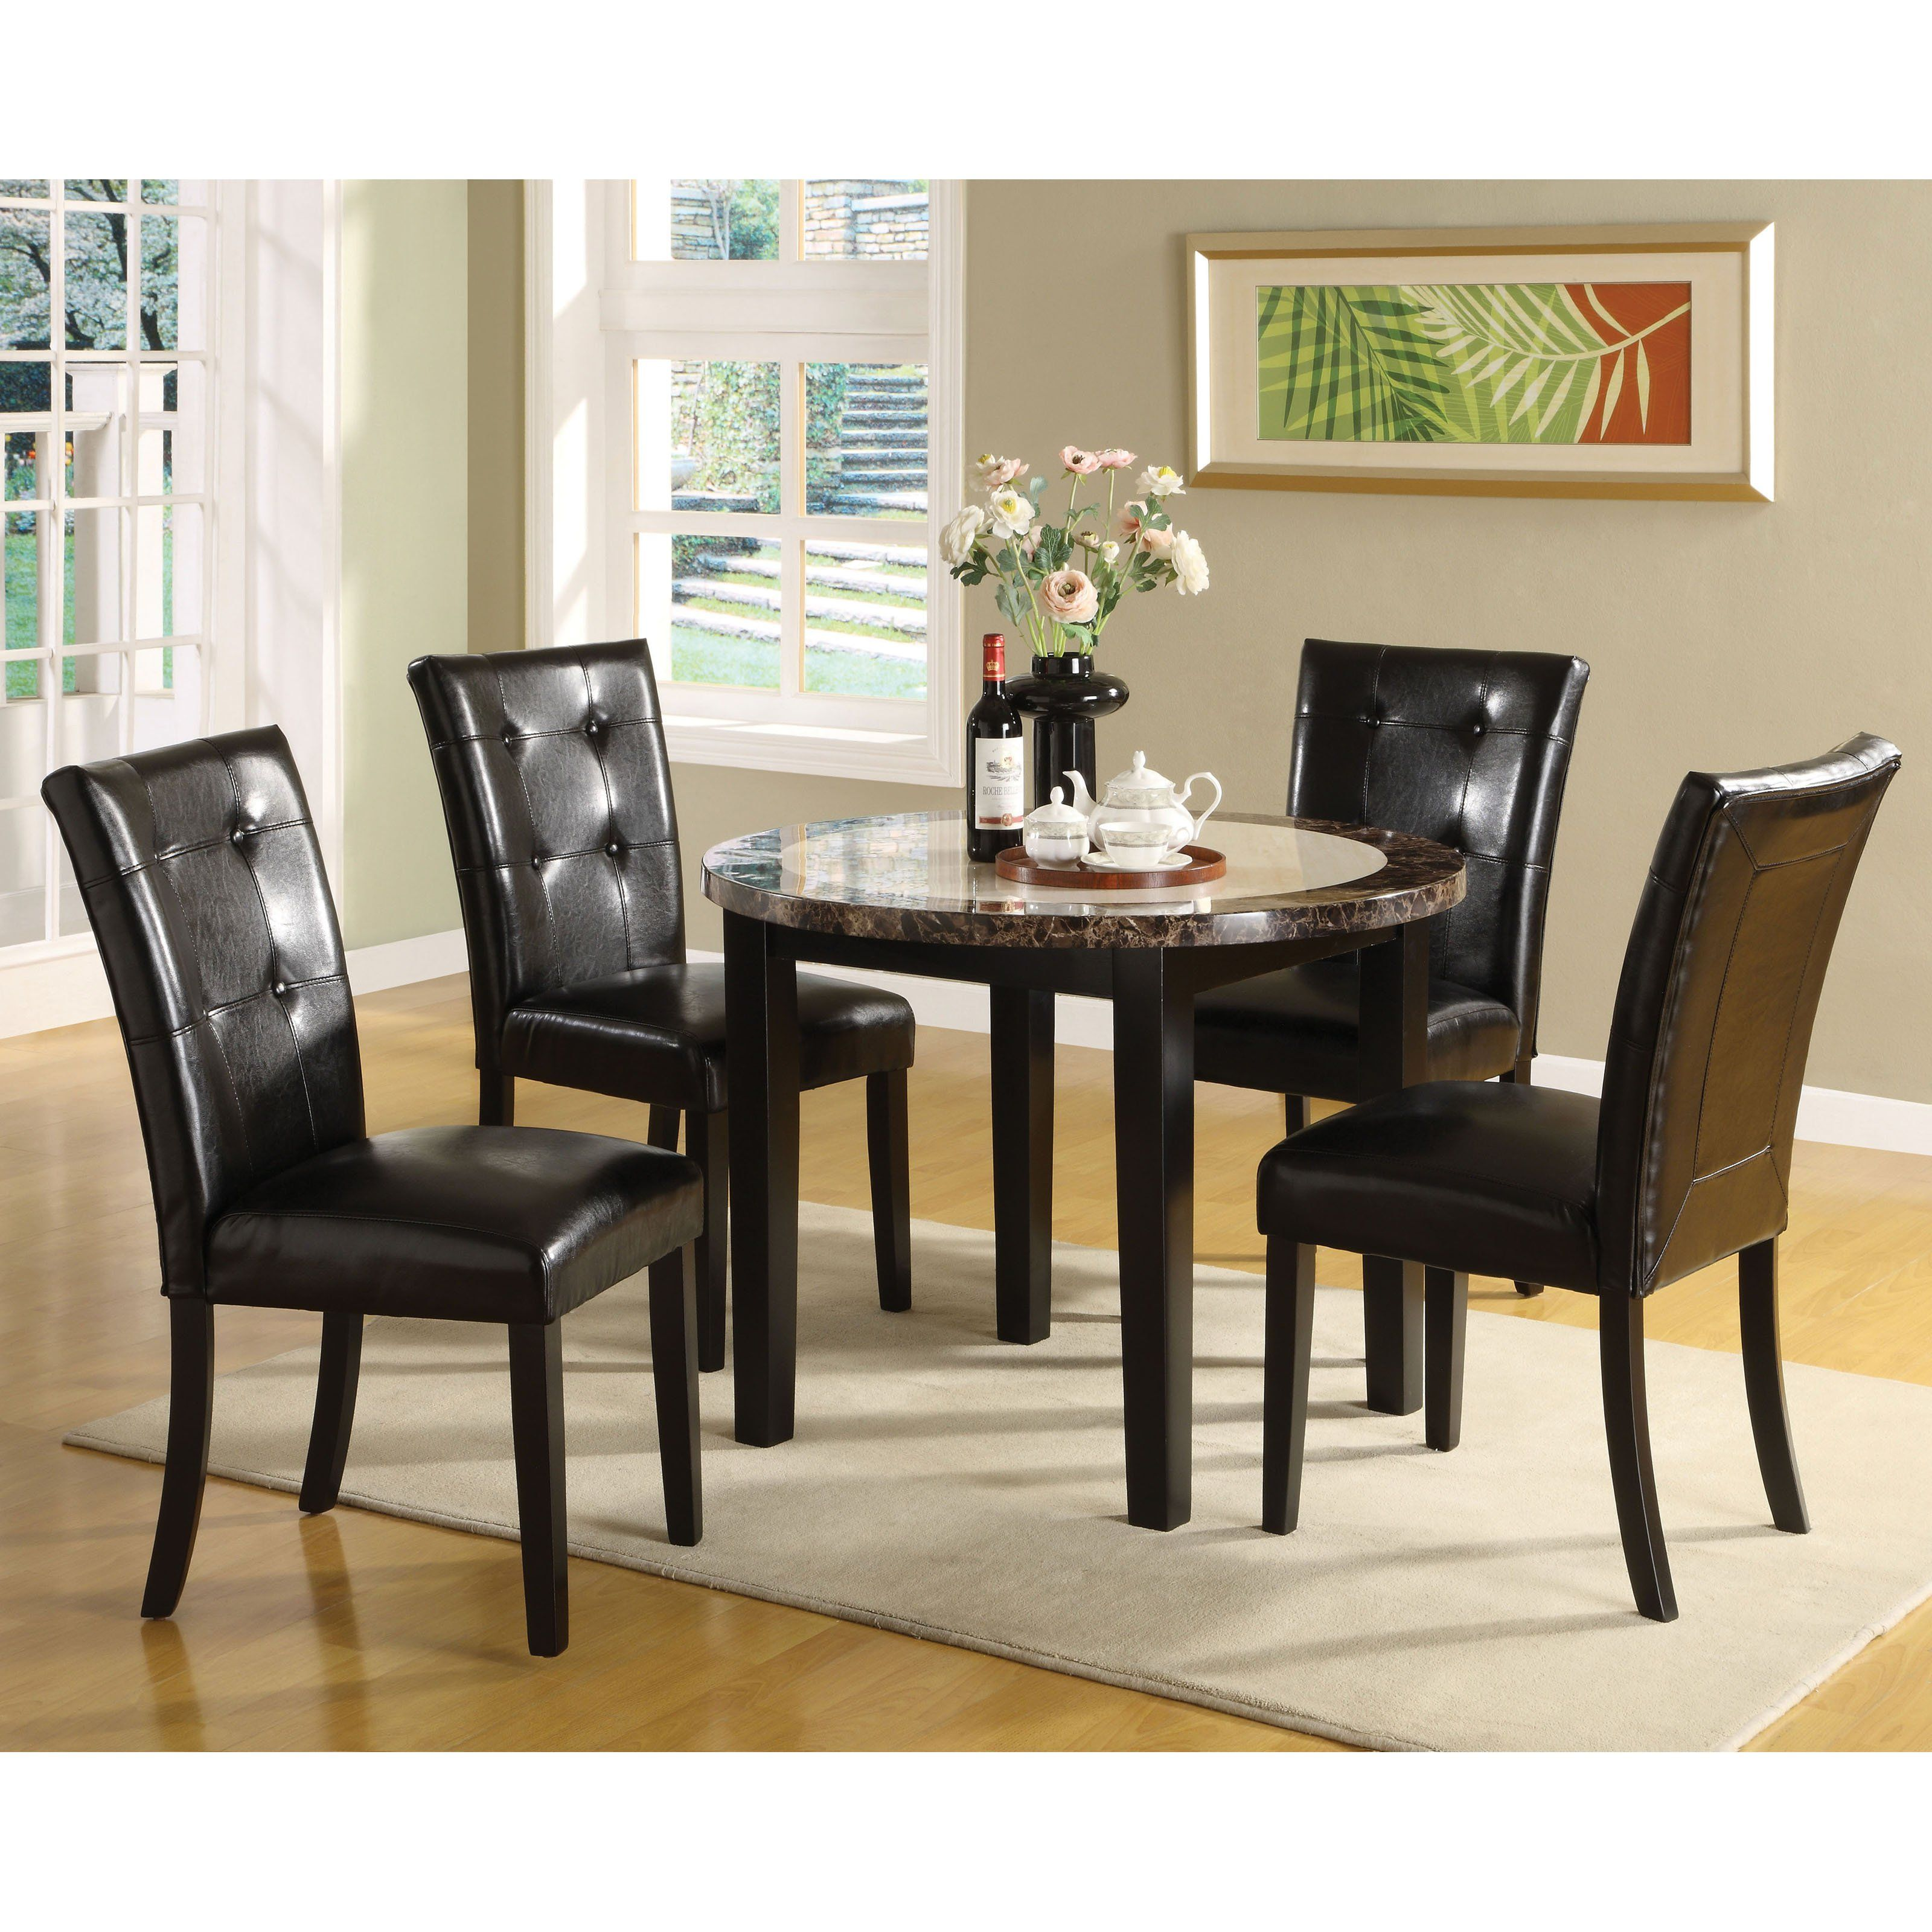 Furniture Of America Laelius 5 Piece Round Dining Table Amp Chairs Set From Hayneedle Round Dining Room Sets Small Dining Room Set Dining Room Table Marble